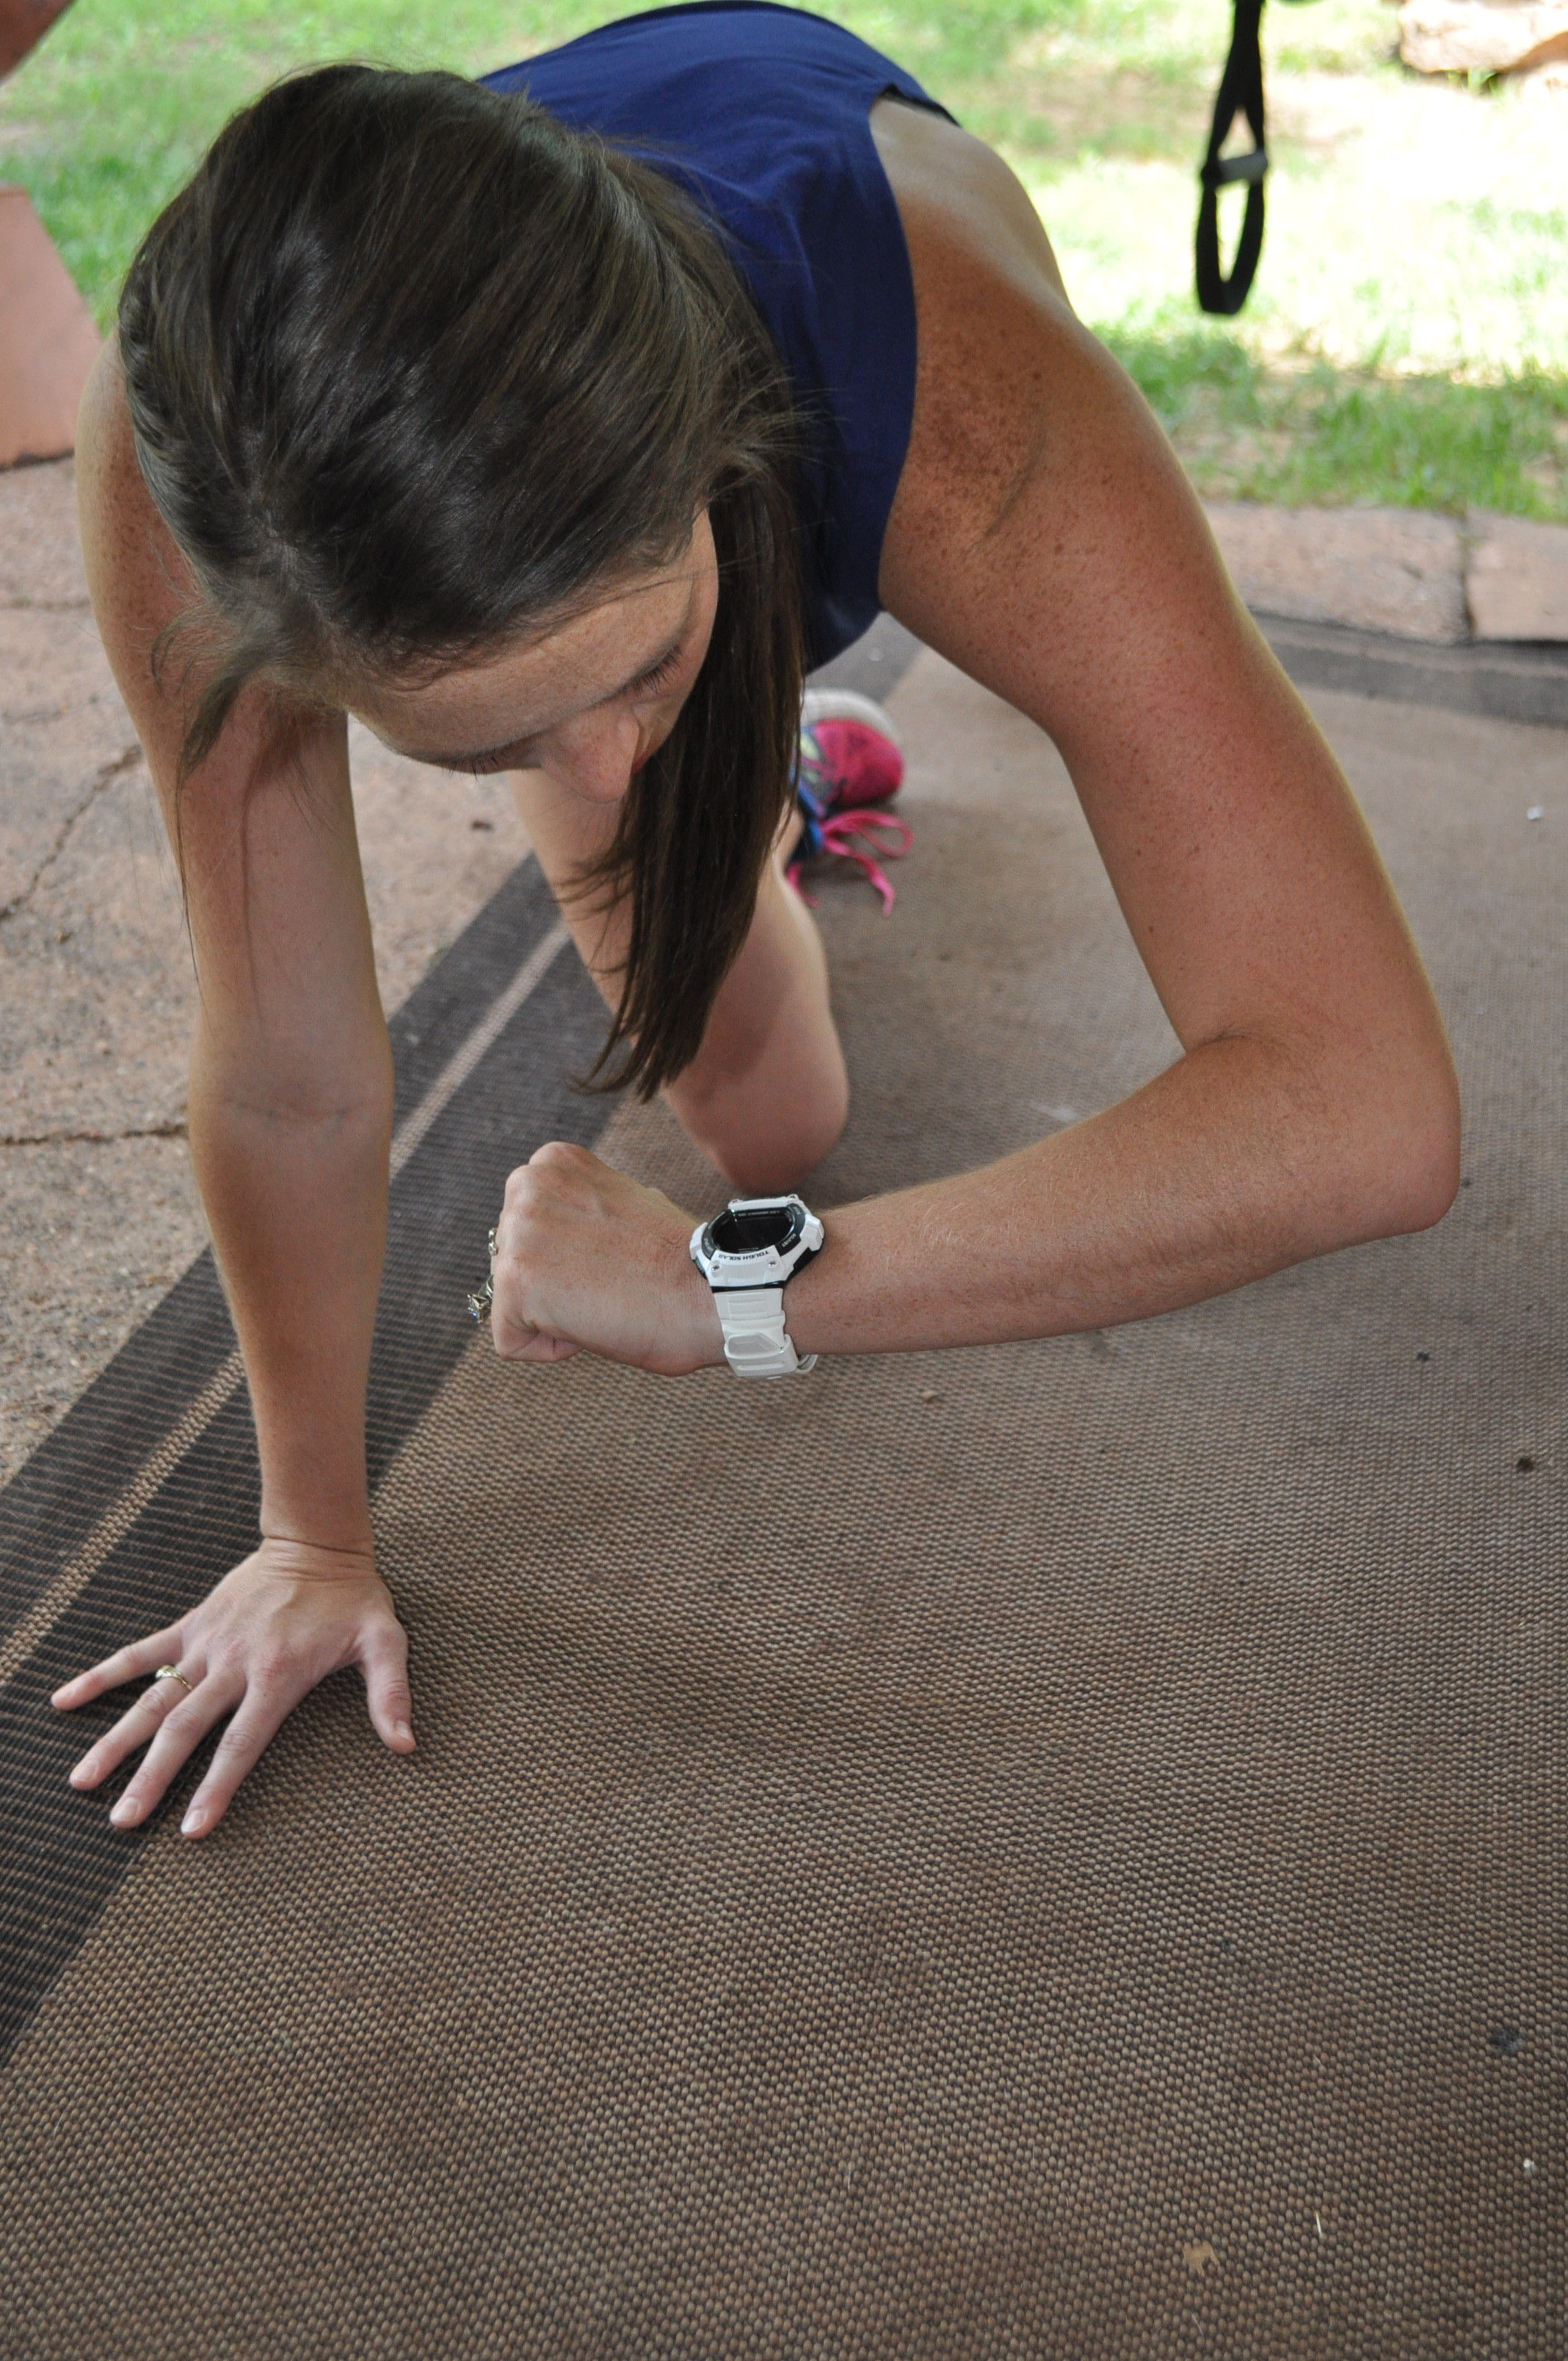 The Backyard Body Burner Workout + the CASIO Watch Giveaway from @Kohls